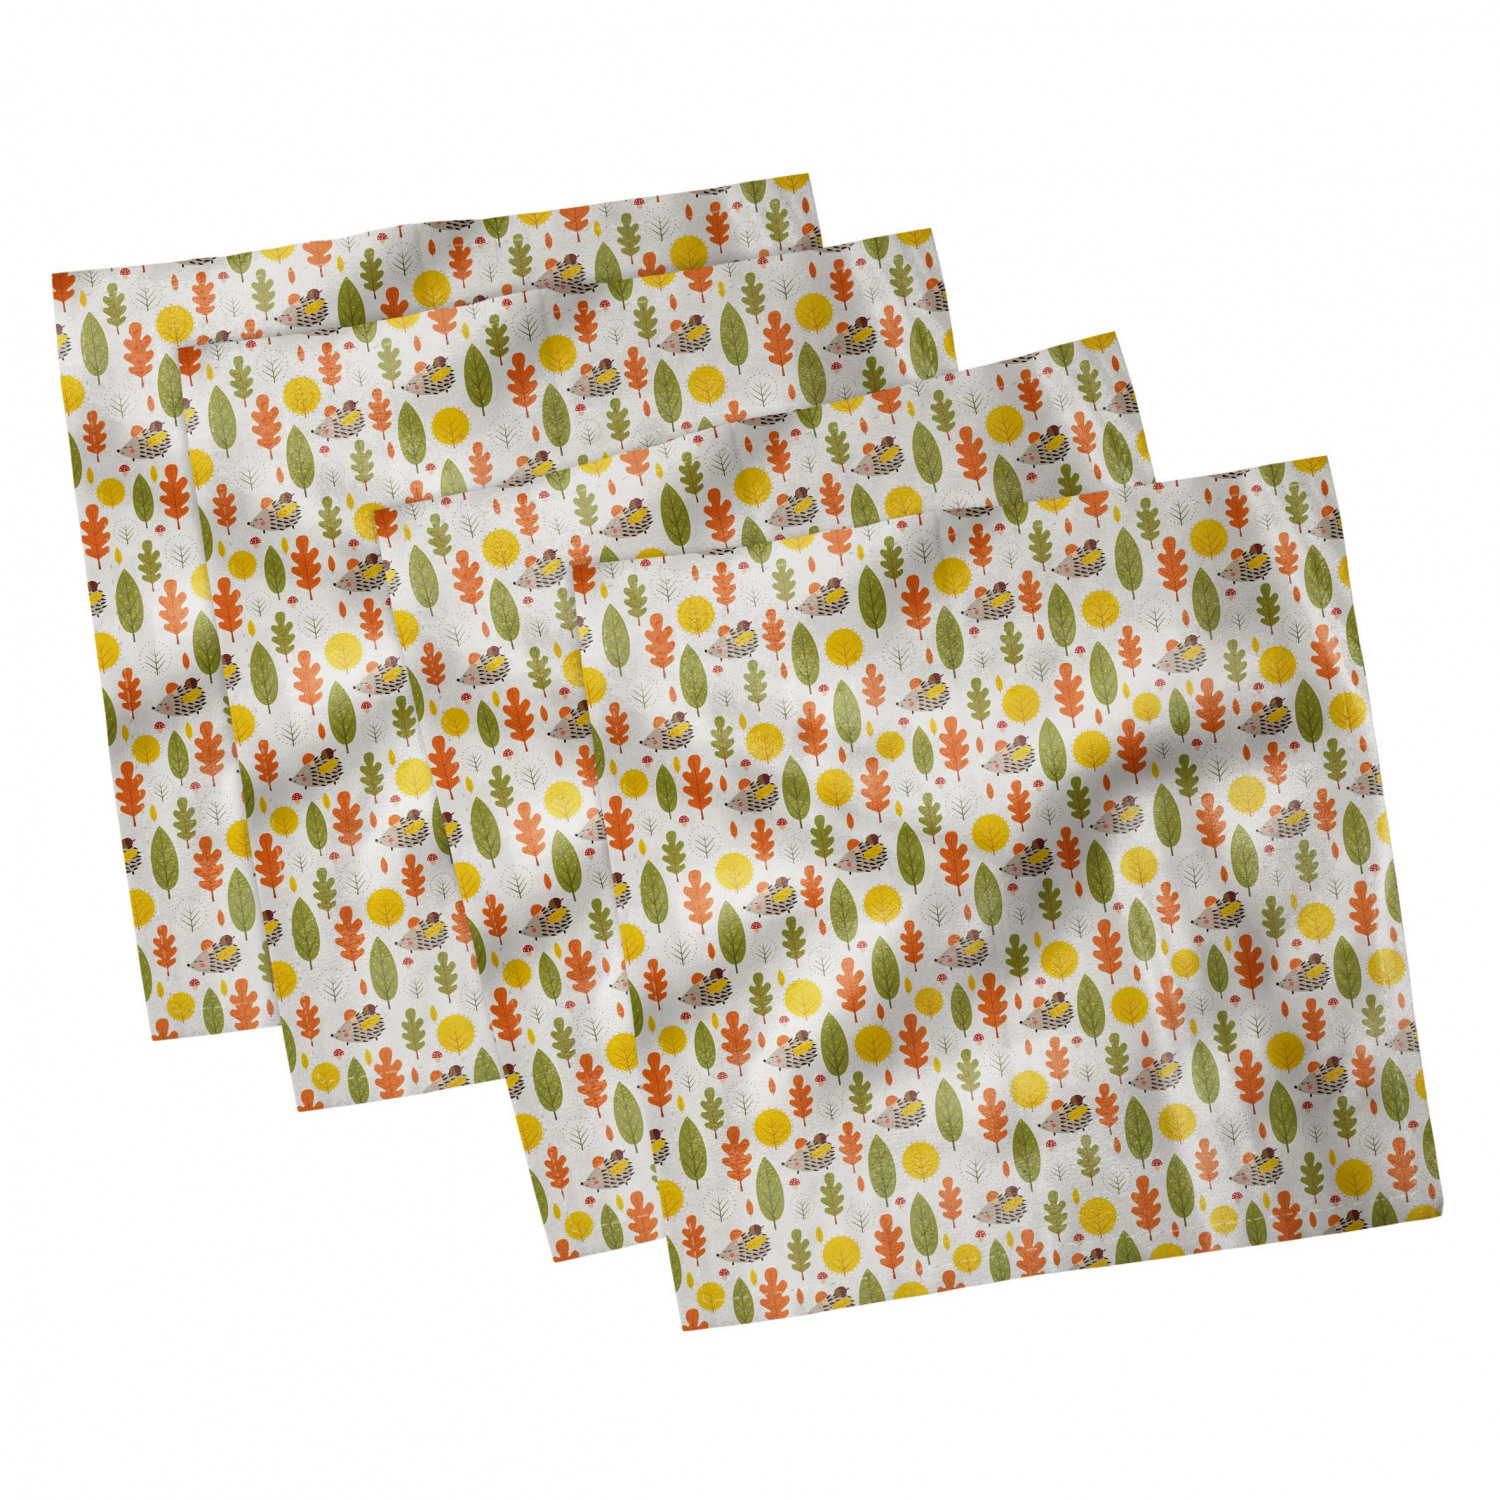 thumbnail 9 - Ambesonne Autumn Fall Decorative Satin Napkins Set of 4 Party Dinner Fabric